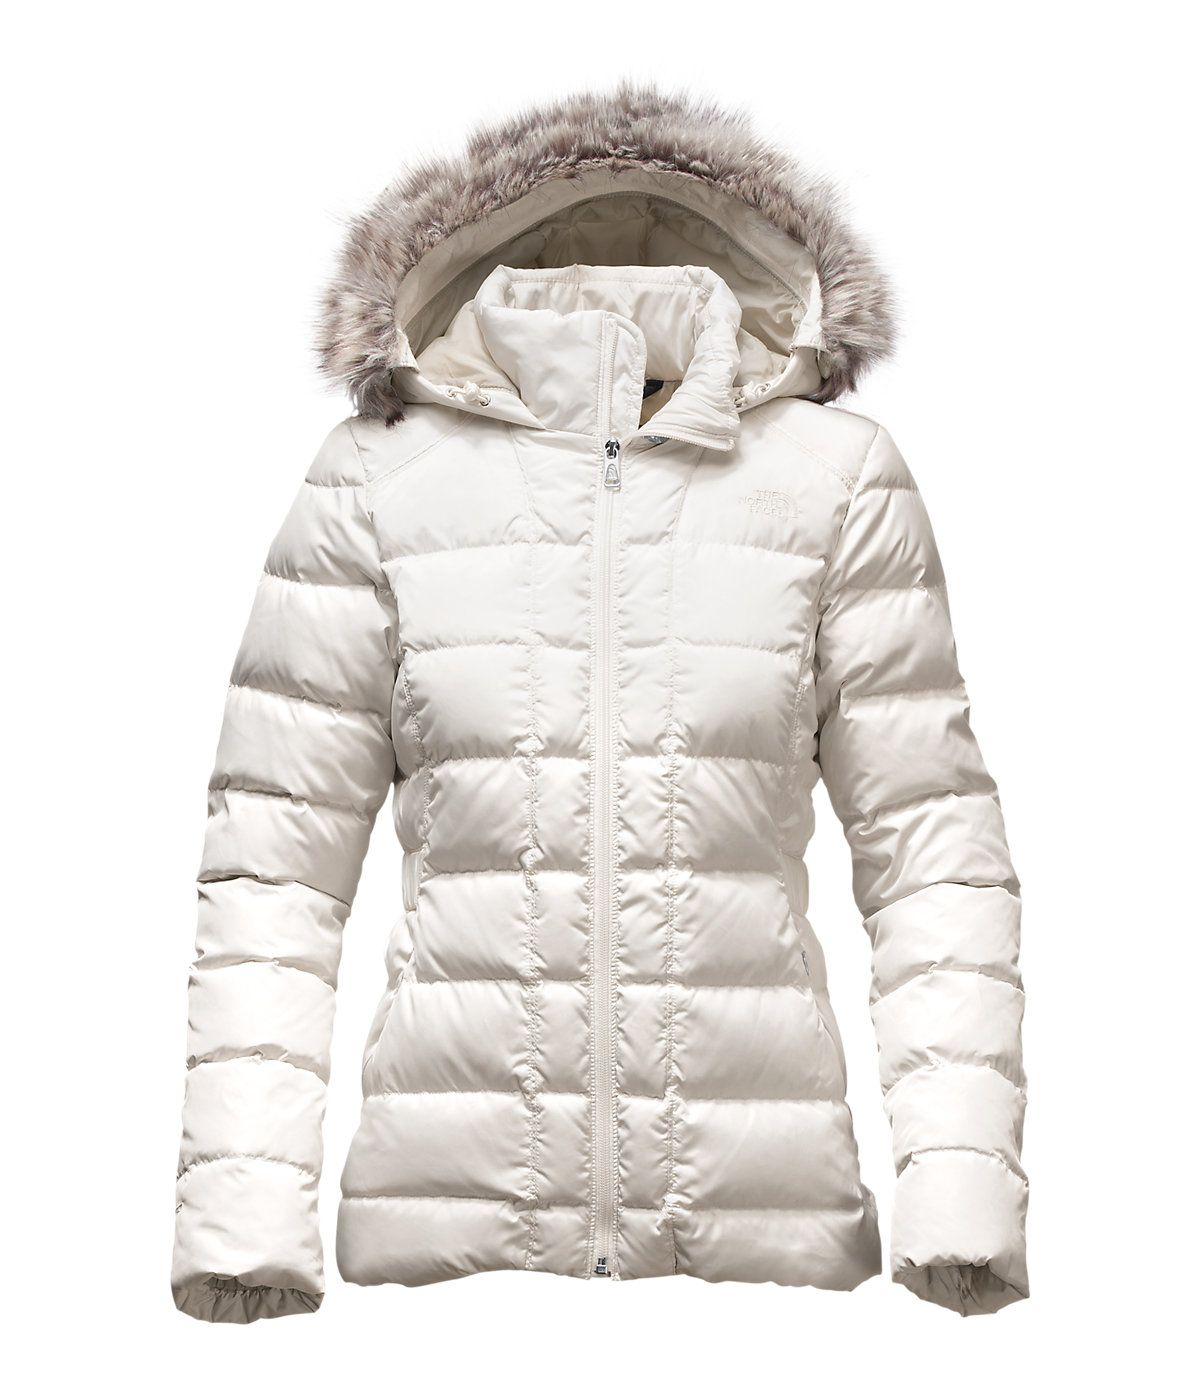 f610847f5816 The North Face  WOMEN S GOTHAM DOWN JACKET  137 sale  230 orig    MNLiving  Wish List